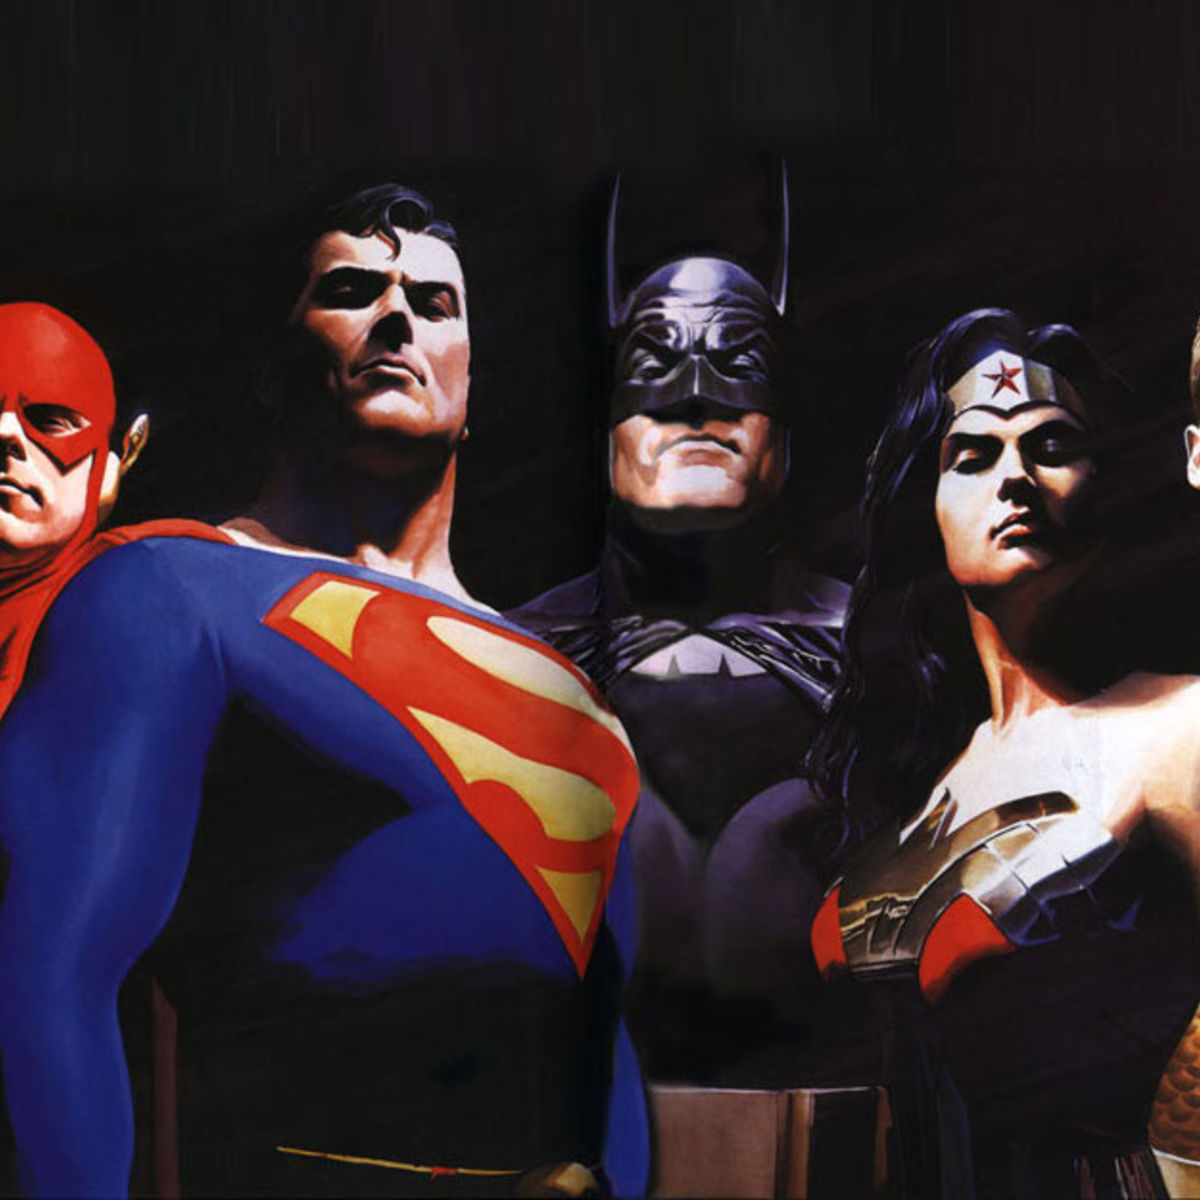 alex-ross-justice-league-wallpaper.jpg